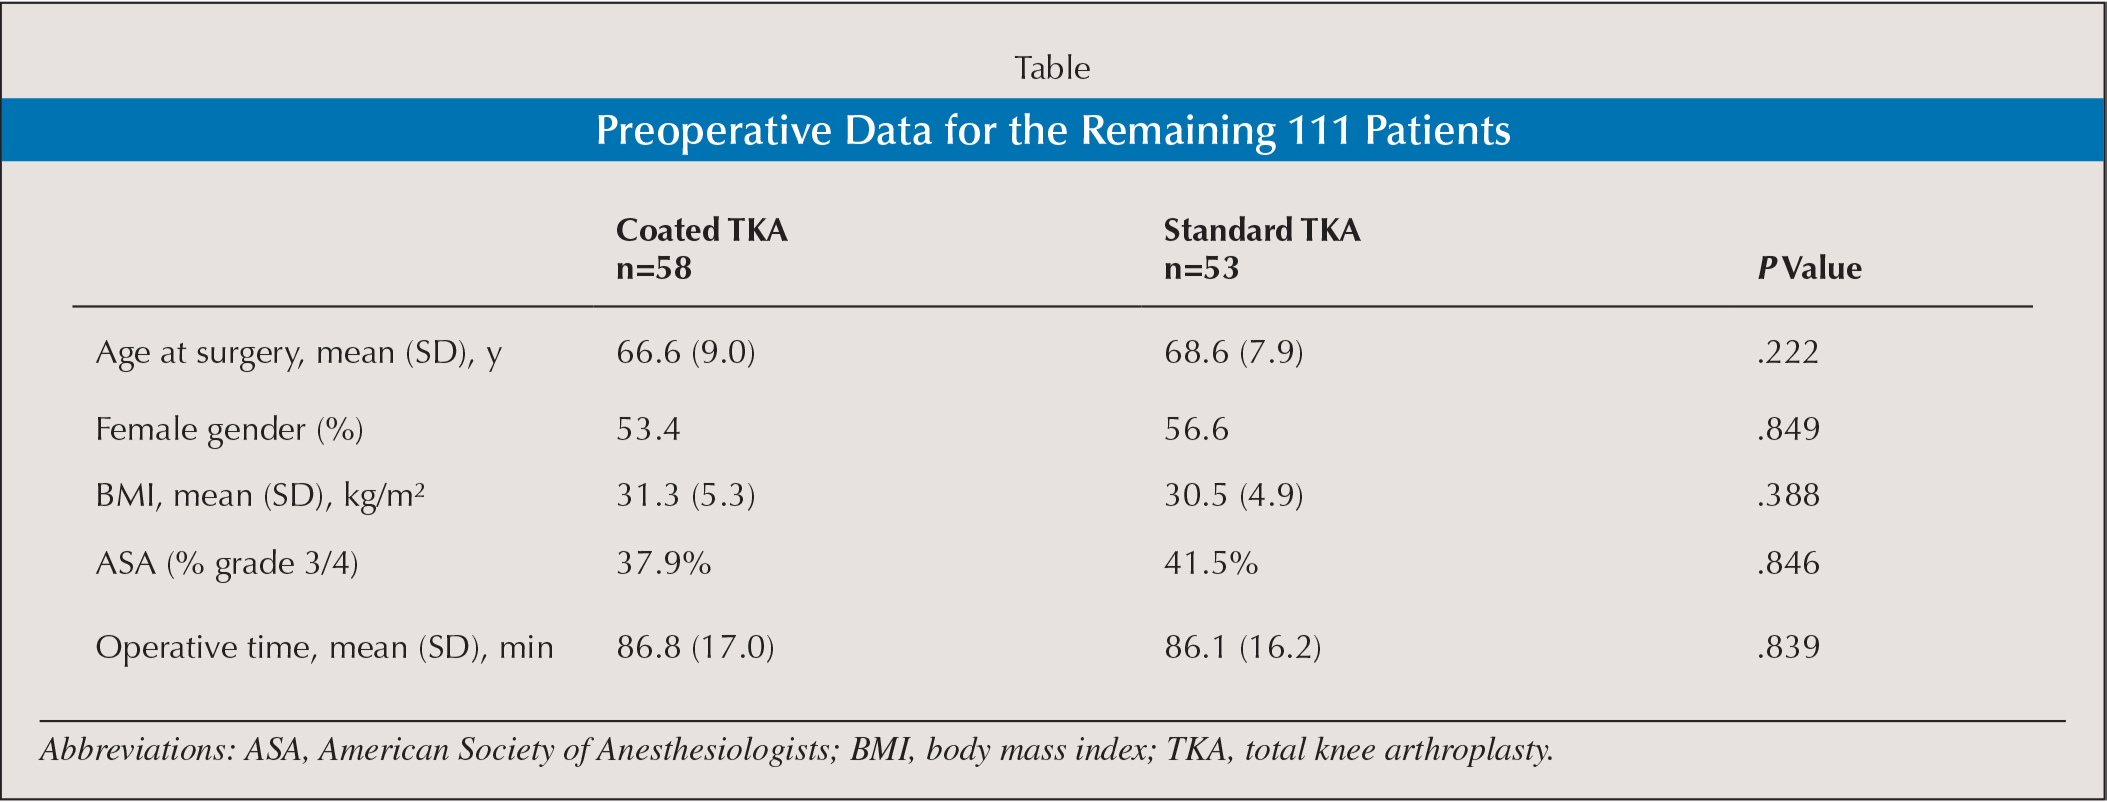 Preoperative Data for the Remaining 111 Patients